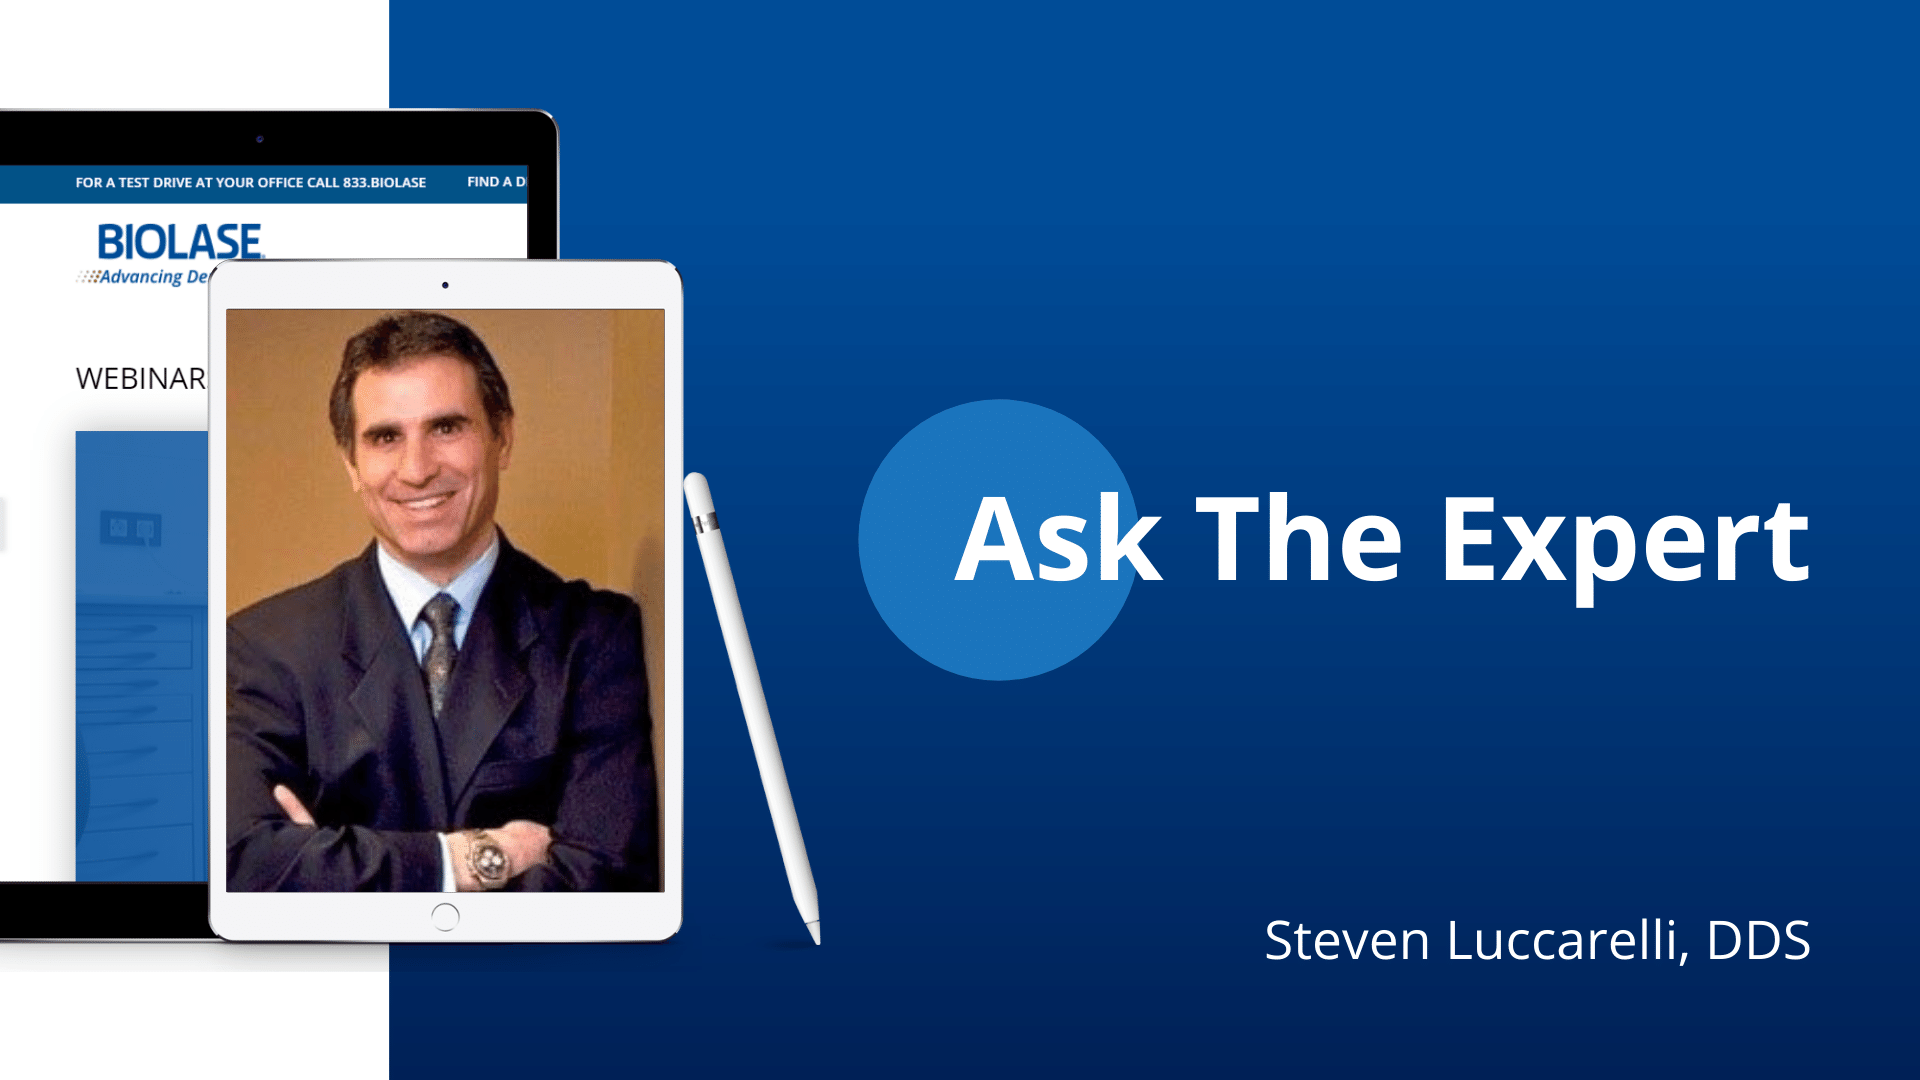 ask-the-expert-luccarelli